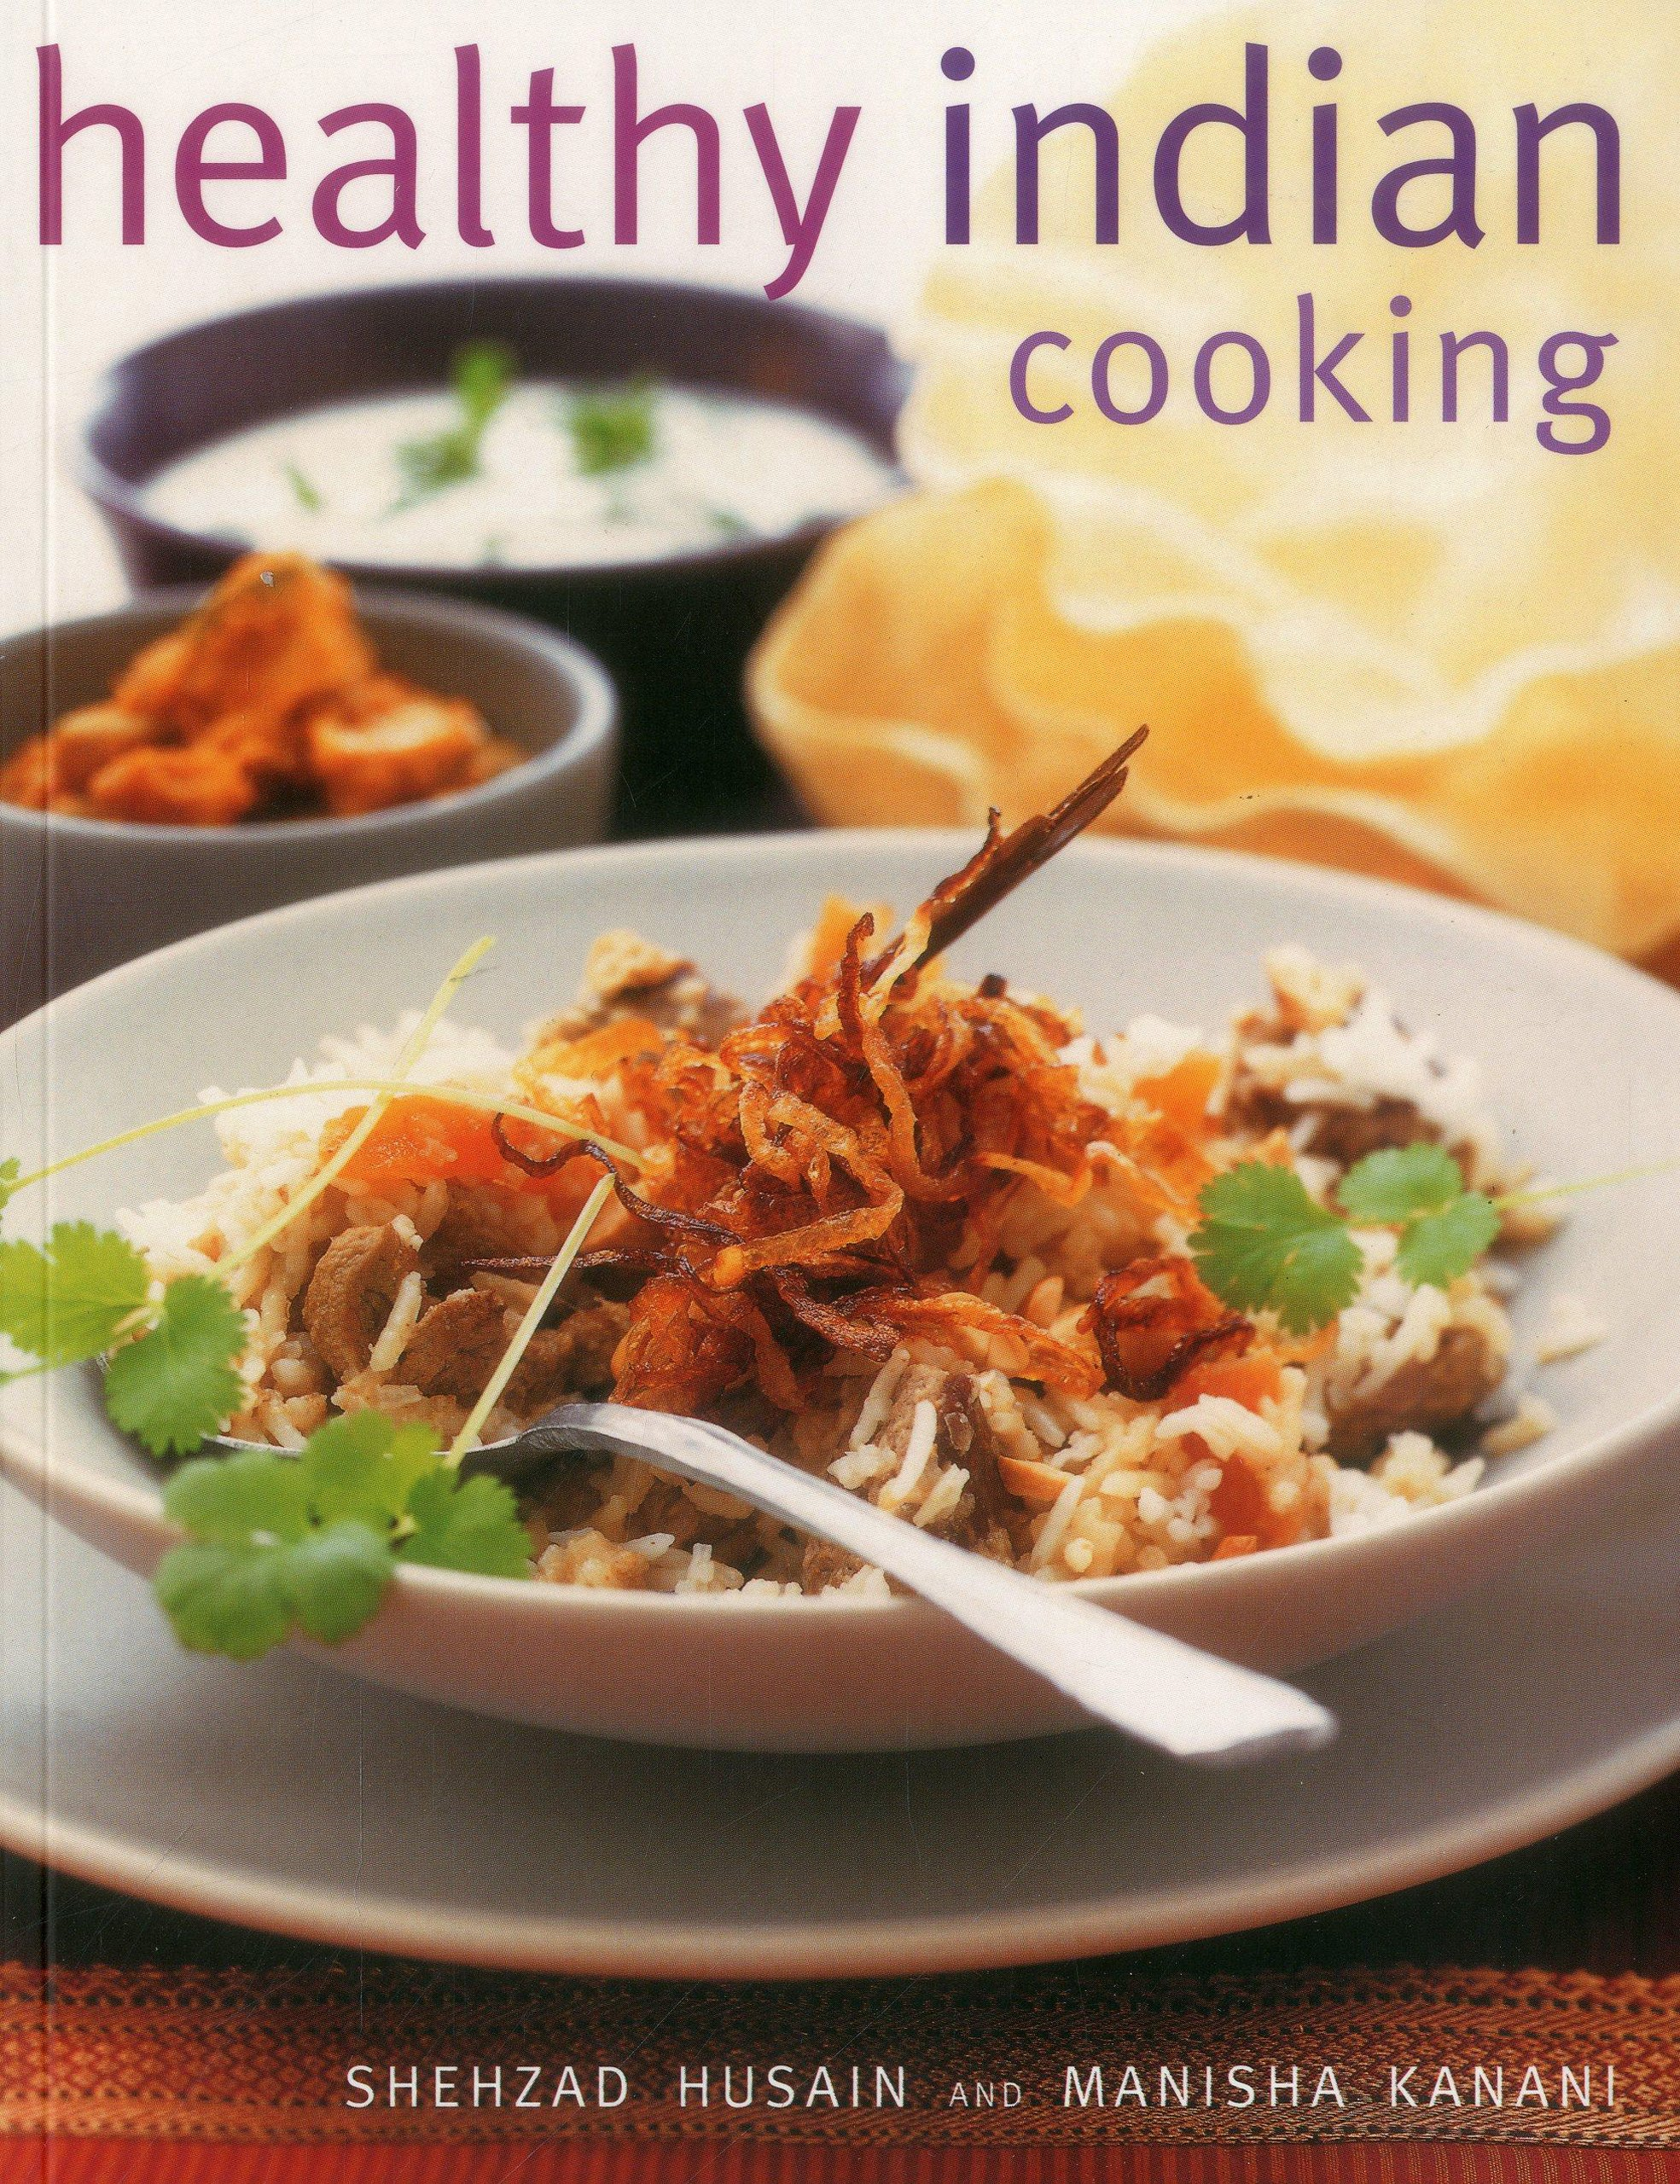 Healthy indian cooking amazon shehzad husain manisha kanani healthy indian cooking amazon shehzad husain manisha kanani libros en idiomas extranjeros forumfinder Image collections